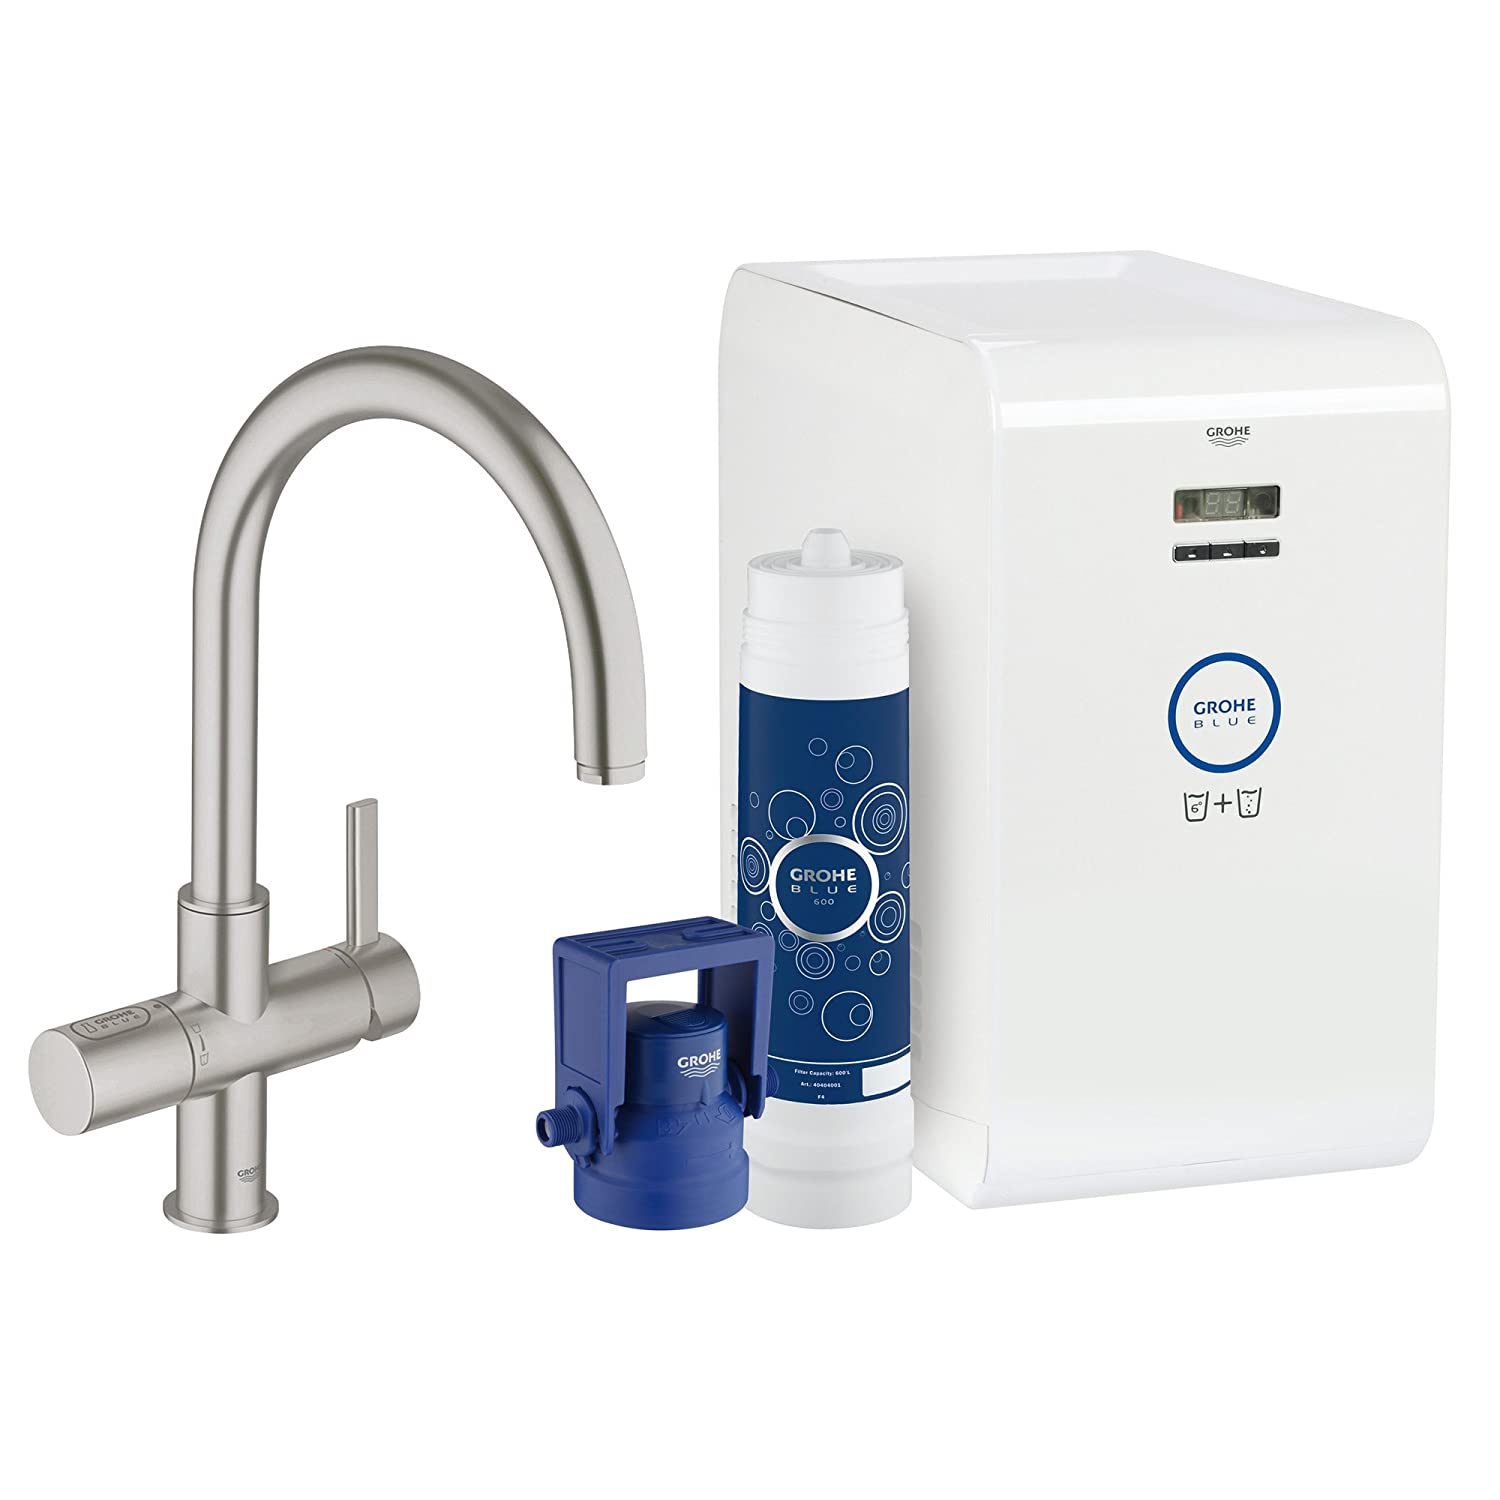 Grohe Blue Chilled And Sparkling 2-Handle Faucet and Water System ...